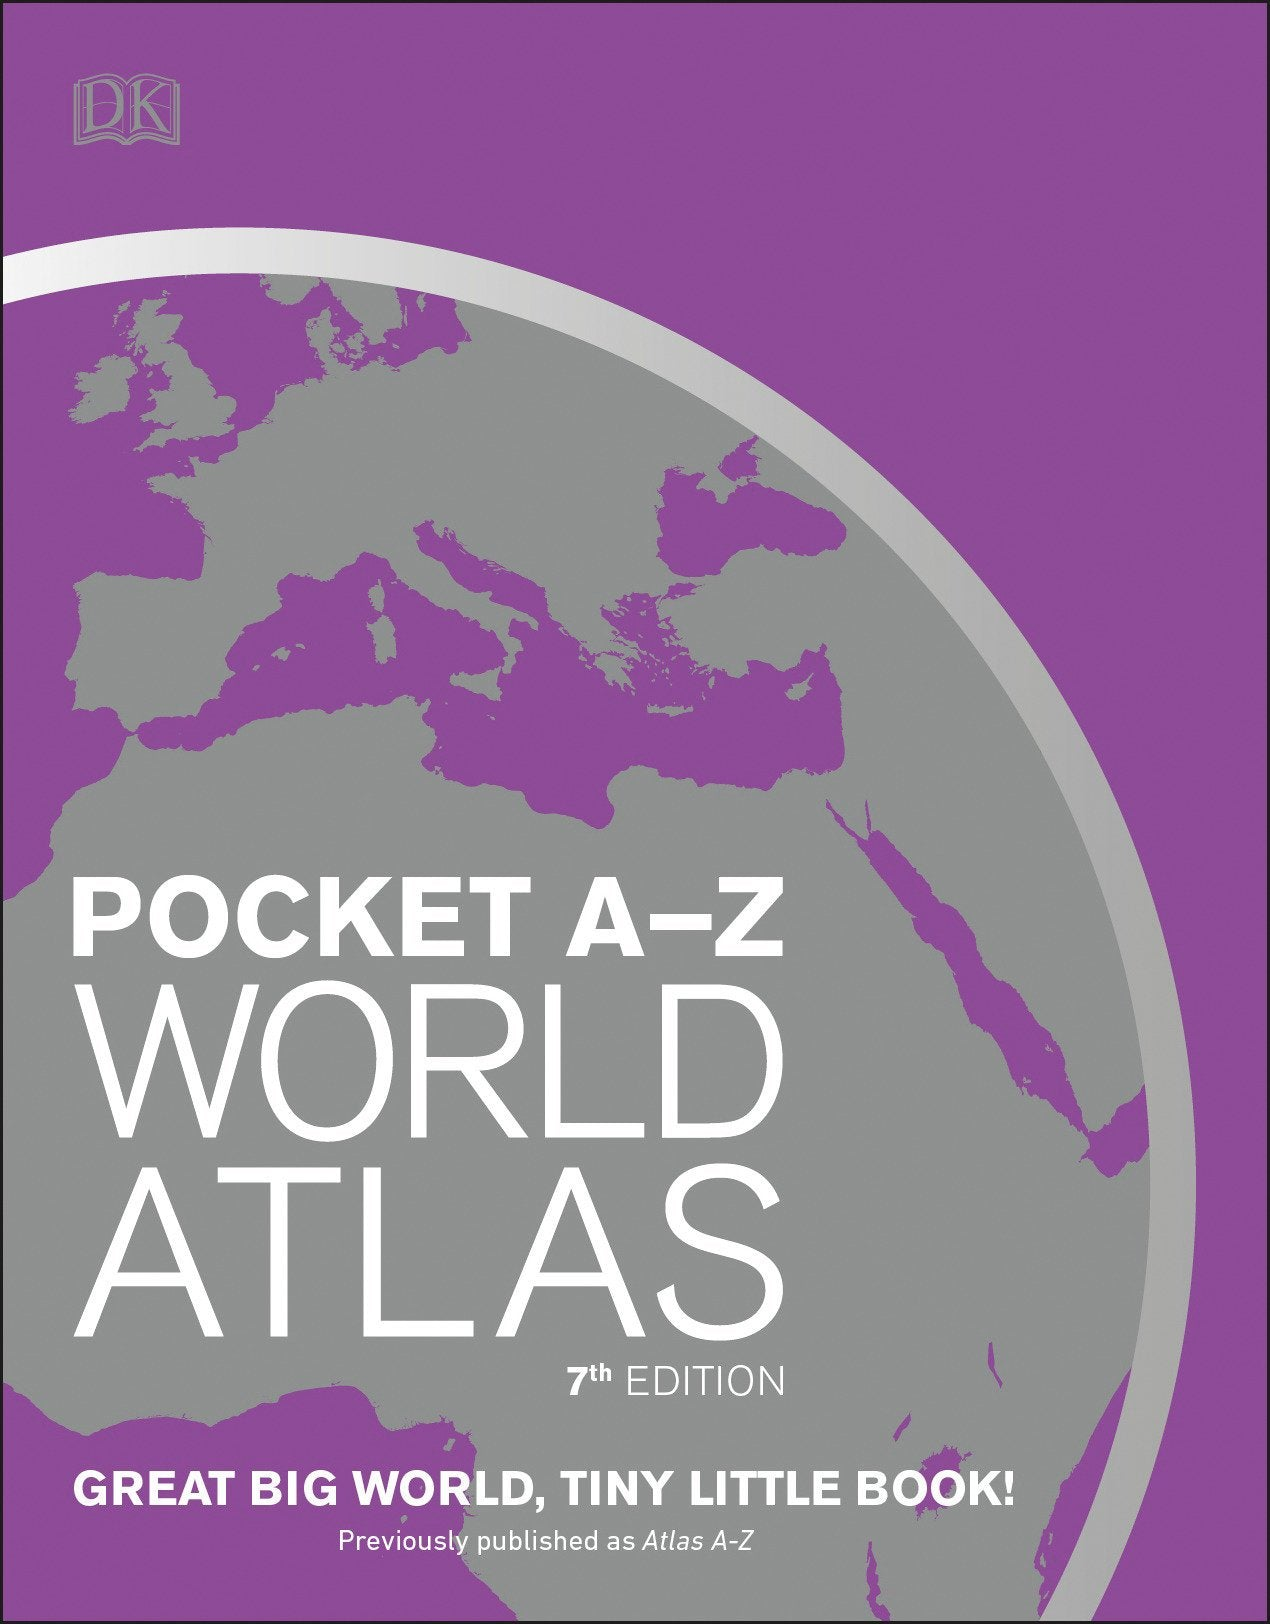 DK World Atlas A-Z: Pocket Guide 7e